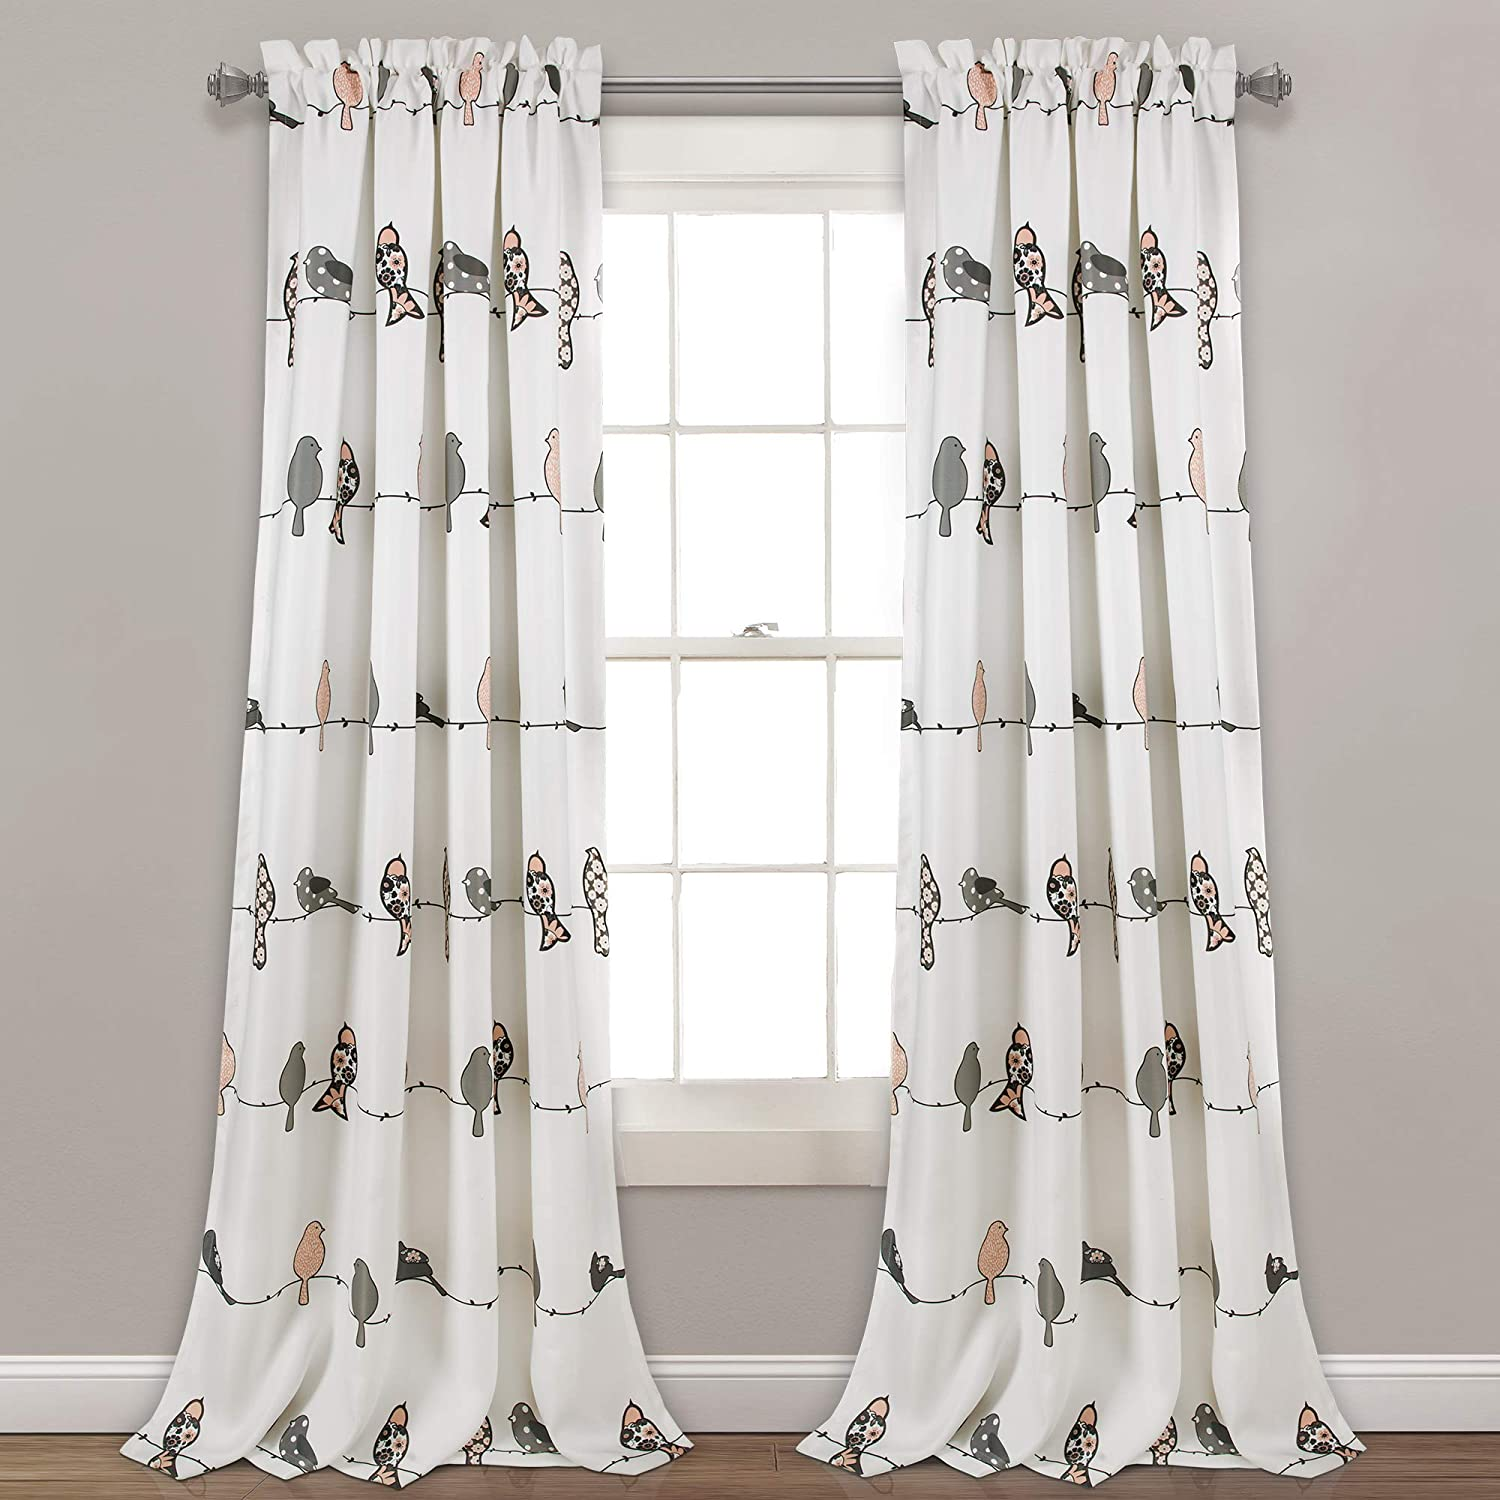 Lush Decor Rowley Birds Curtains Room Darkening Window Panel Set for Living, Dining, Bedroom (Pair), 95 x 52 , Blush and Gray, L, Blush & Gray 81cIPLlZknL